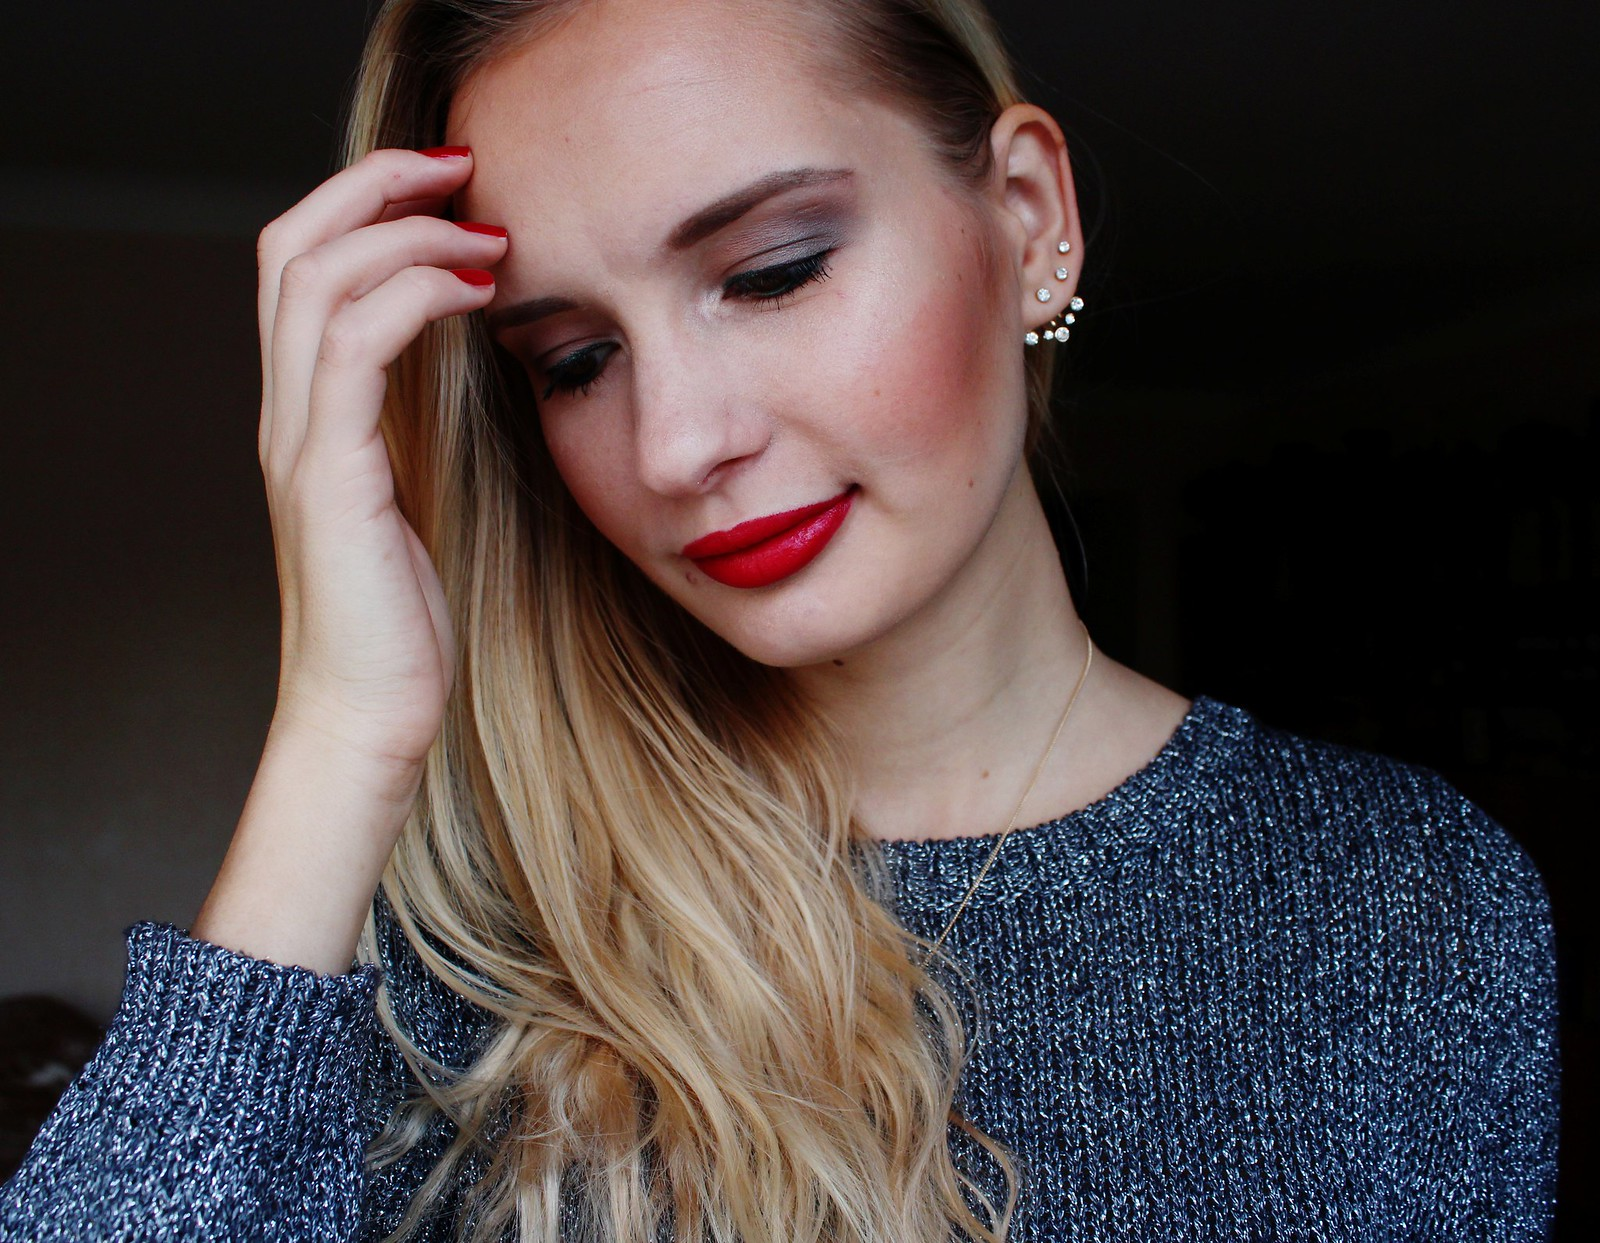 Green eye liner and red lips